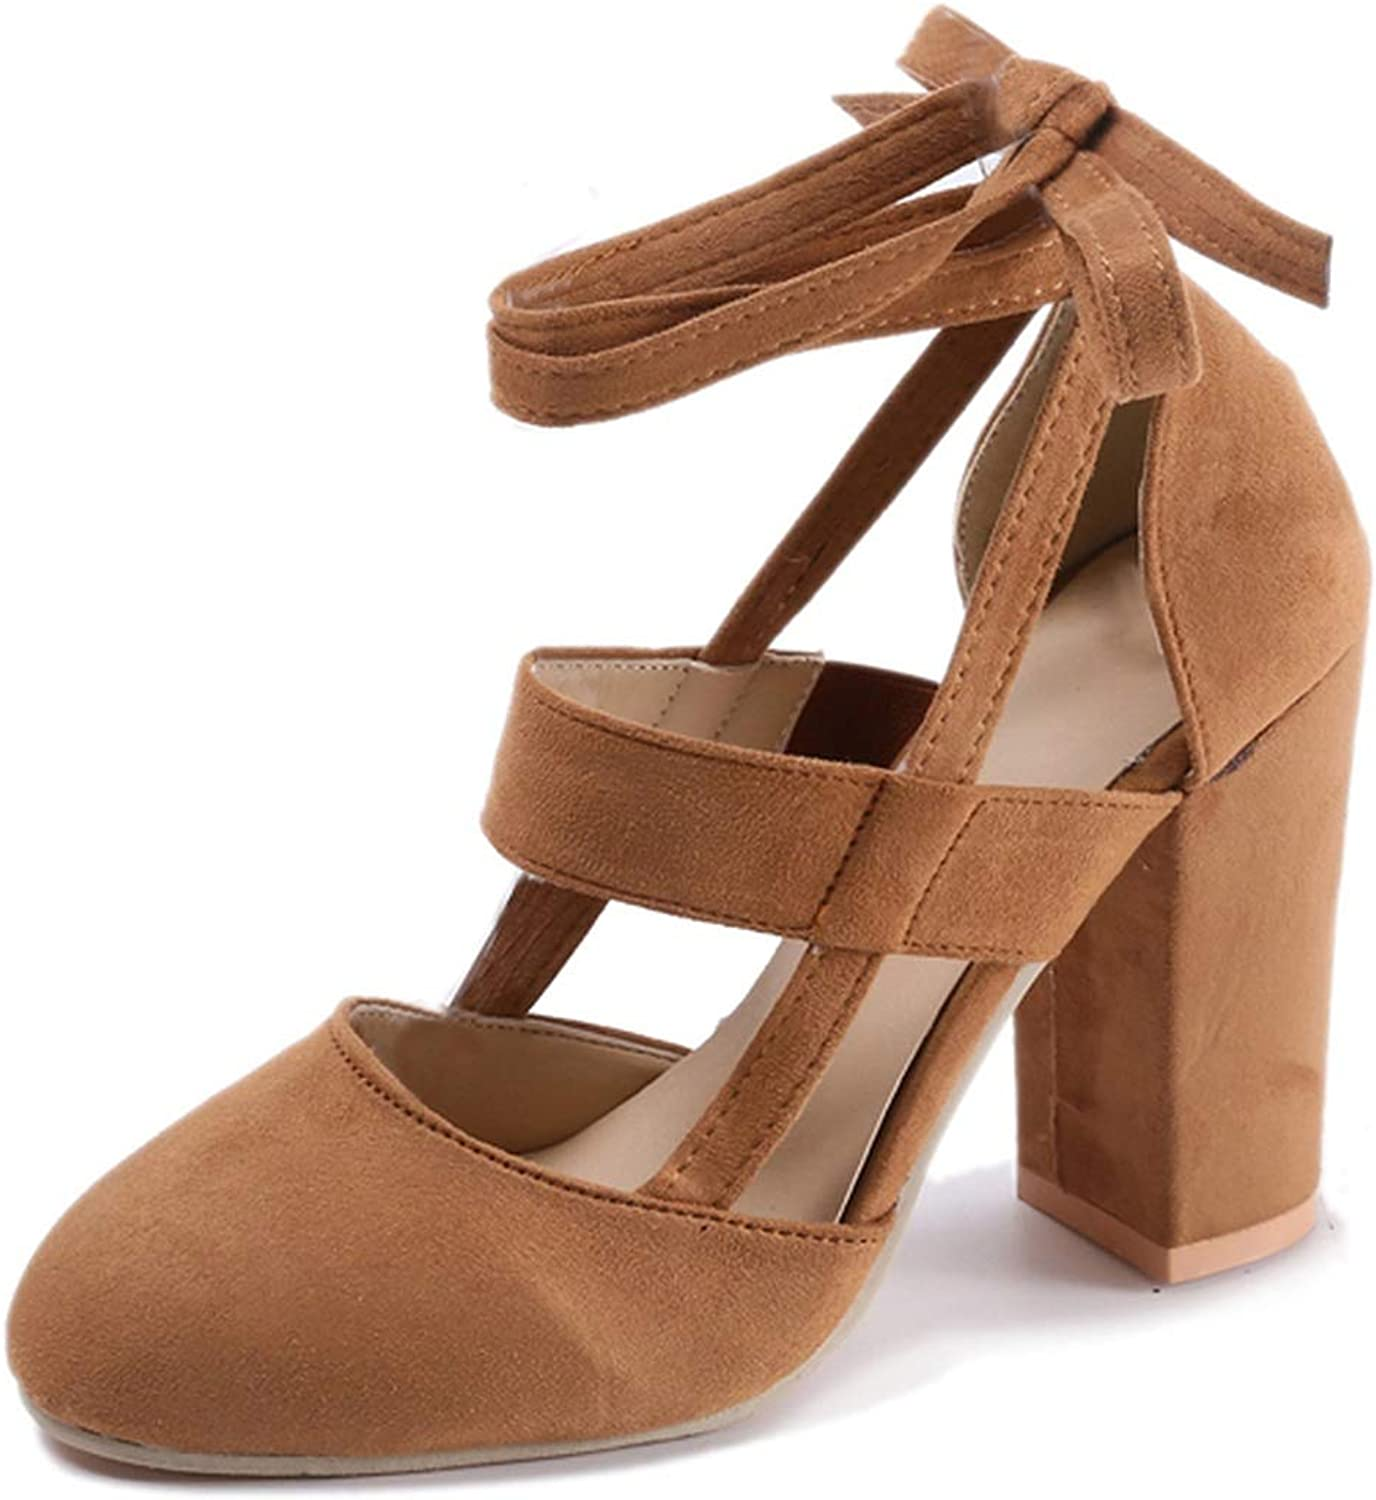 Plus Size Female Ankle Strap High Heels Flock shoes Thick Heel,Khaki,10,United States